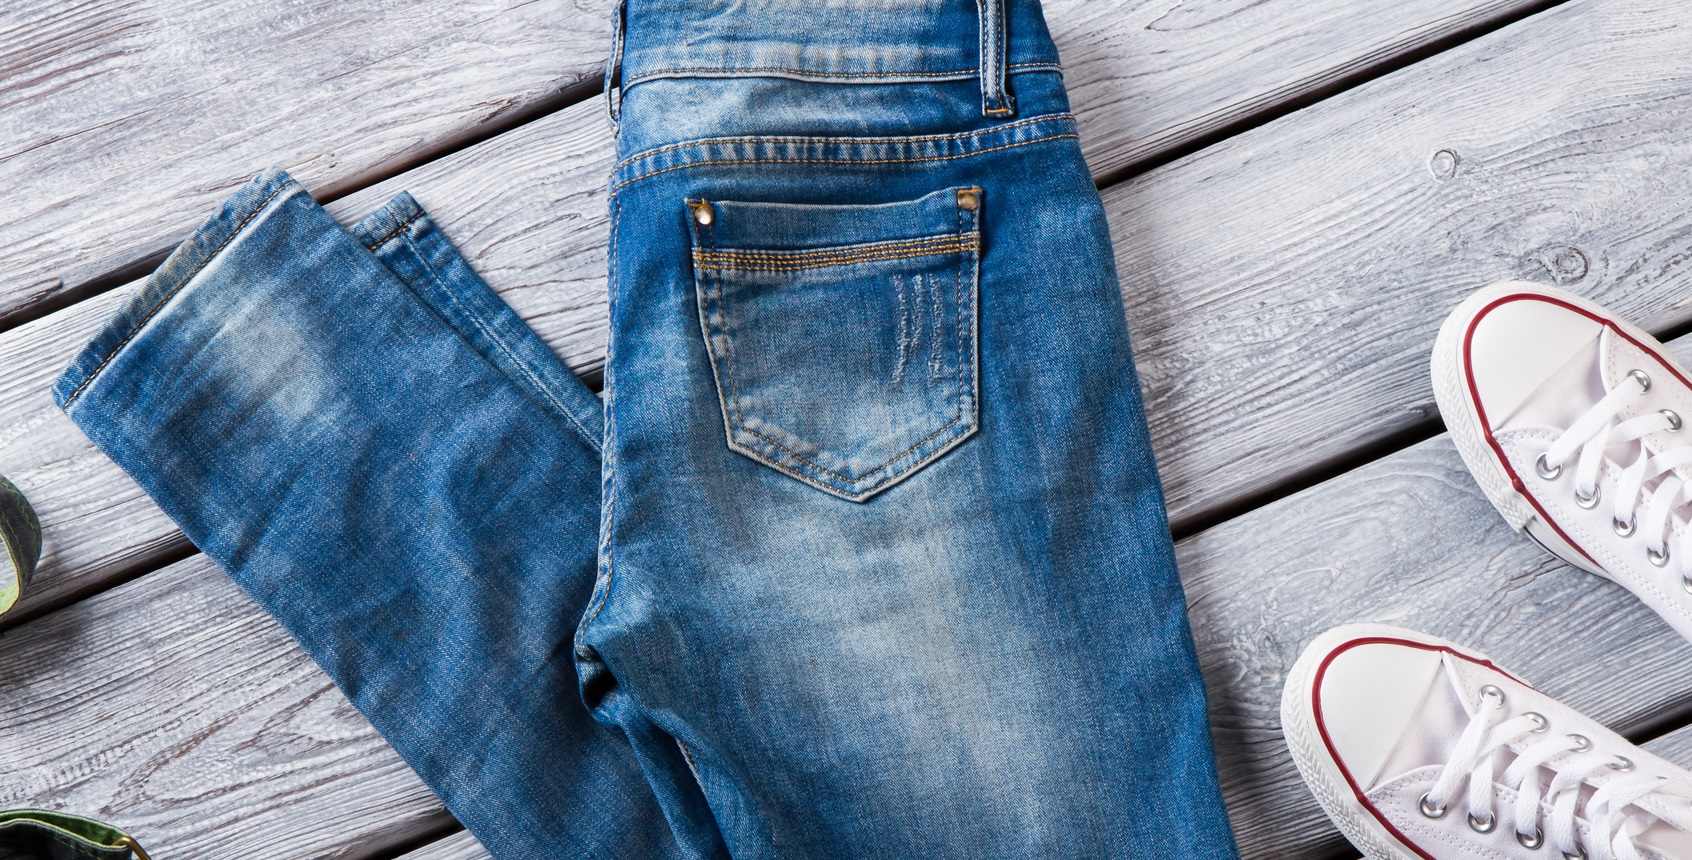 52 Pepe Jeans Outlet